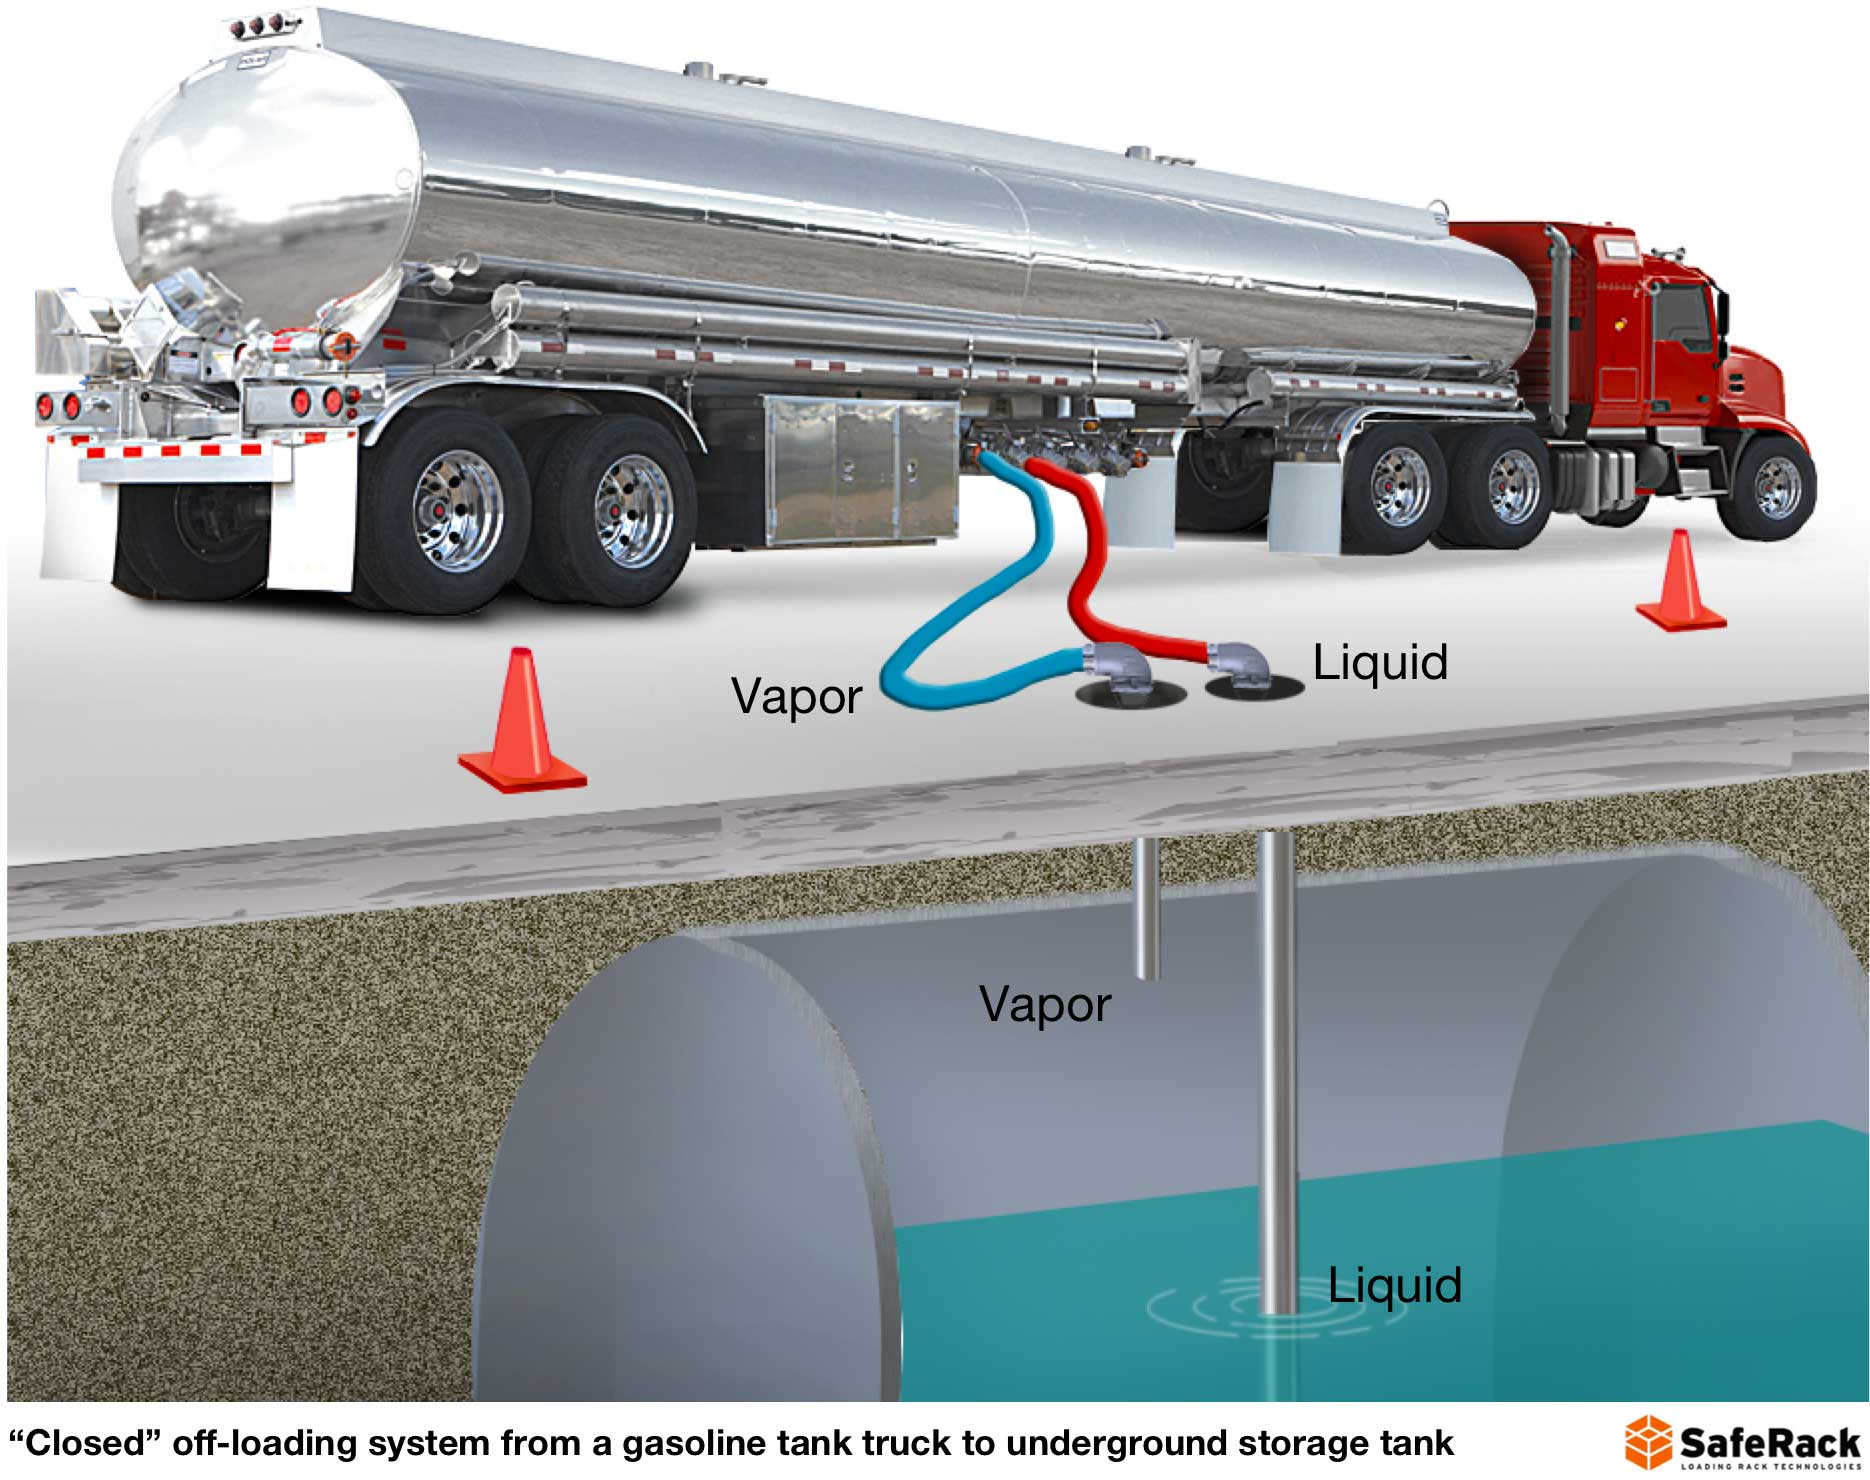 Road Tanker Safety Design Equipment And The Human Factor Saferack Power Supply For Lights In Trailer Vehicles Contractor Talk When Loading Or Unloading Liquids Liquid Moving Through Pipes Top Arms Bottom Generate Static Electricity